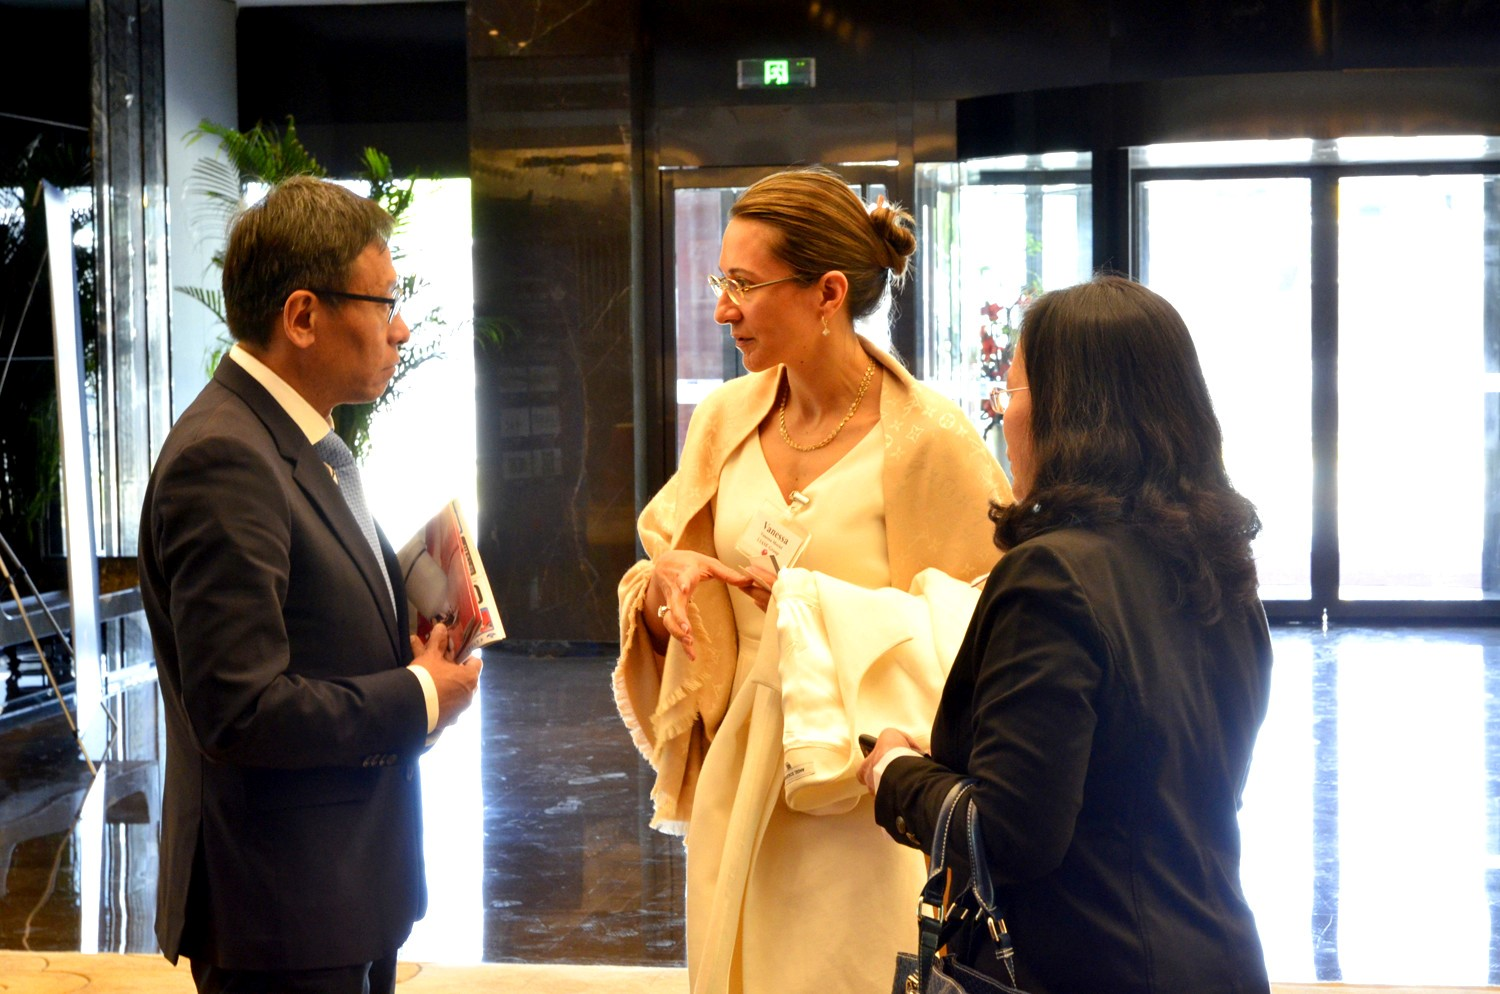 Zhang Jiyu (长寄语) Chairman of CH-AUTO Technology Co. Ltd speaking with Vanessa Moriel, LIASE Group Managing Director Asia and Melania Wu, LIASE Group, Head of Beijing Office.